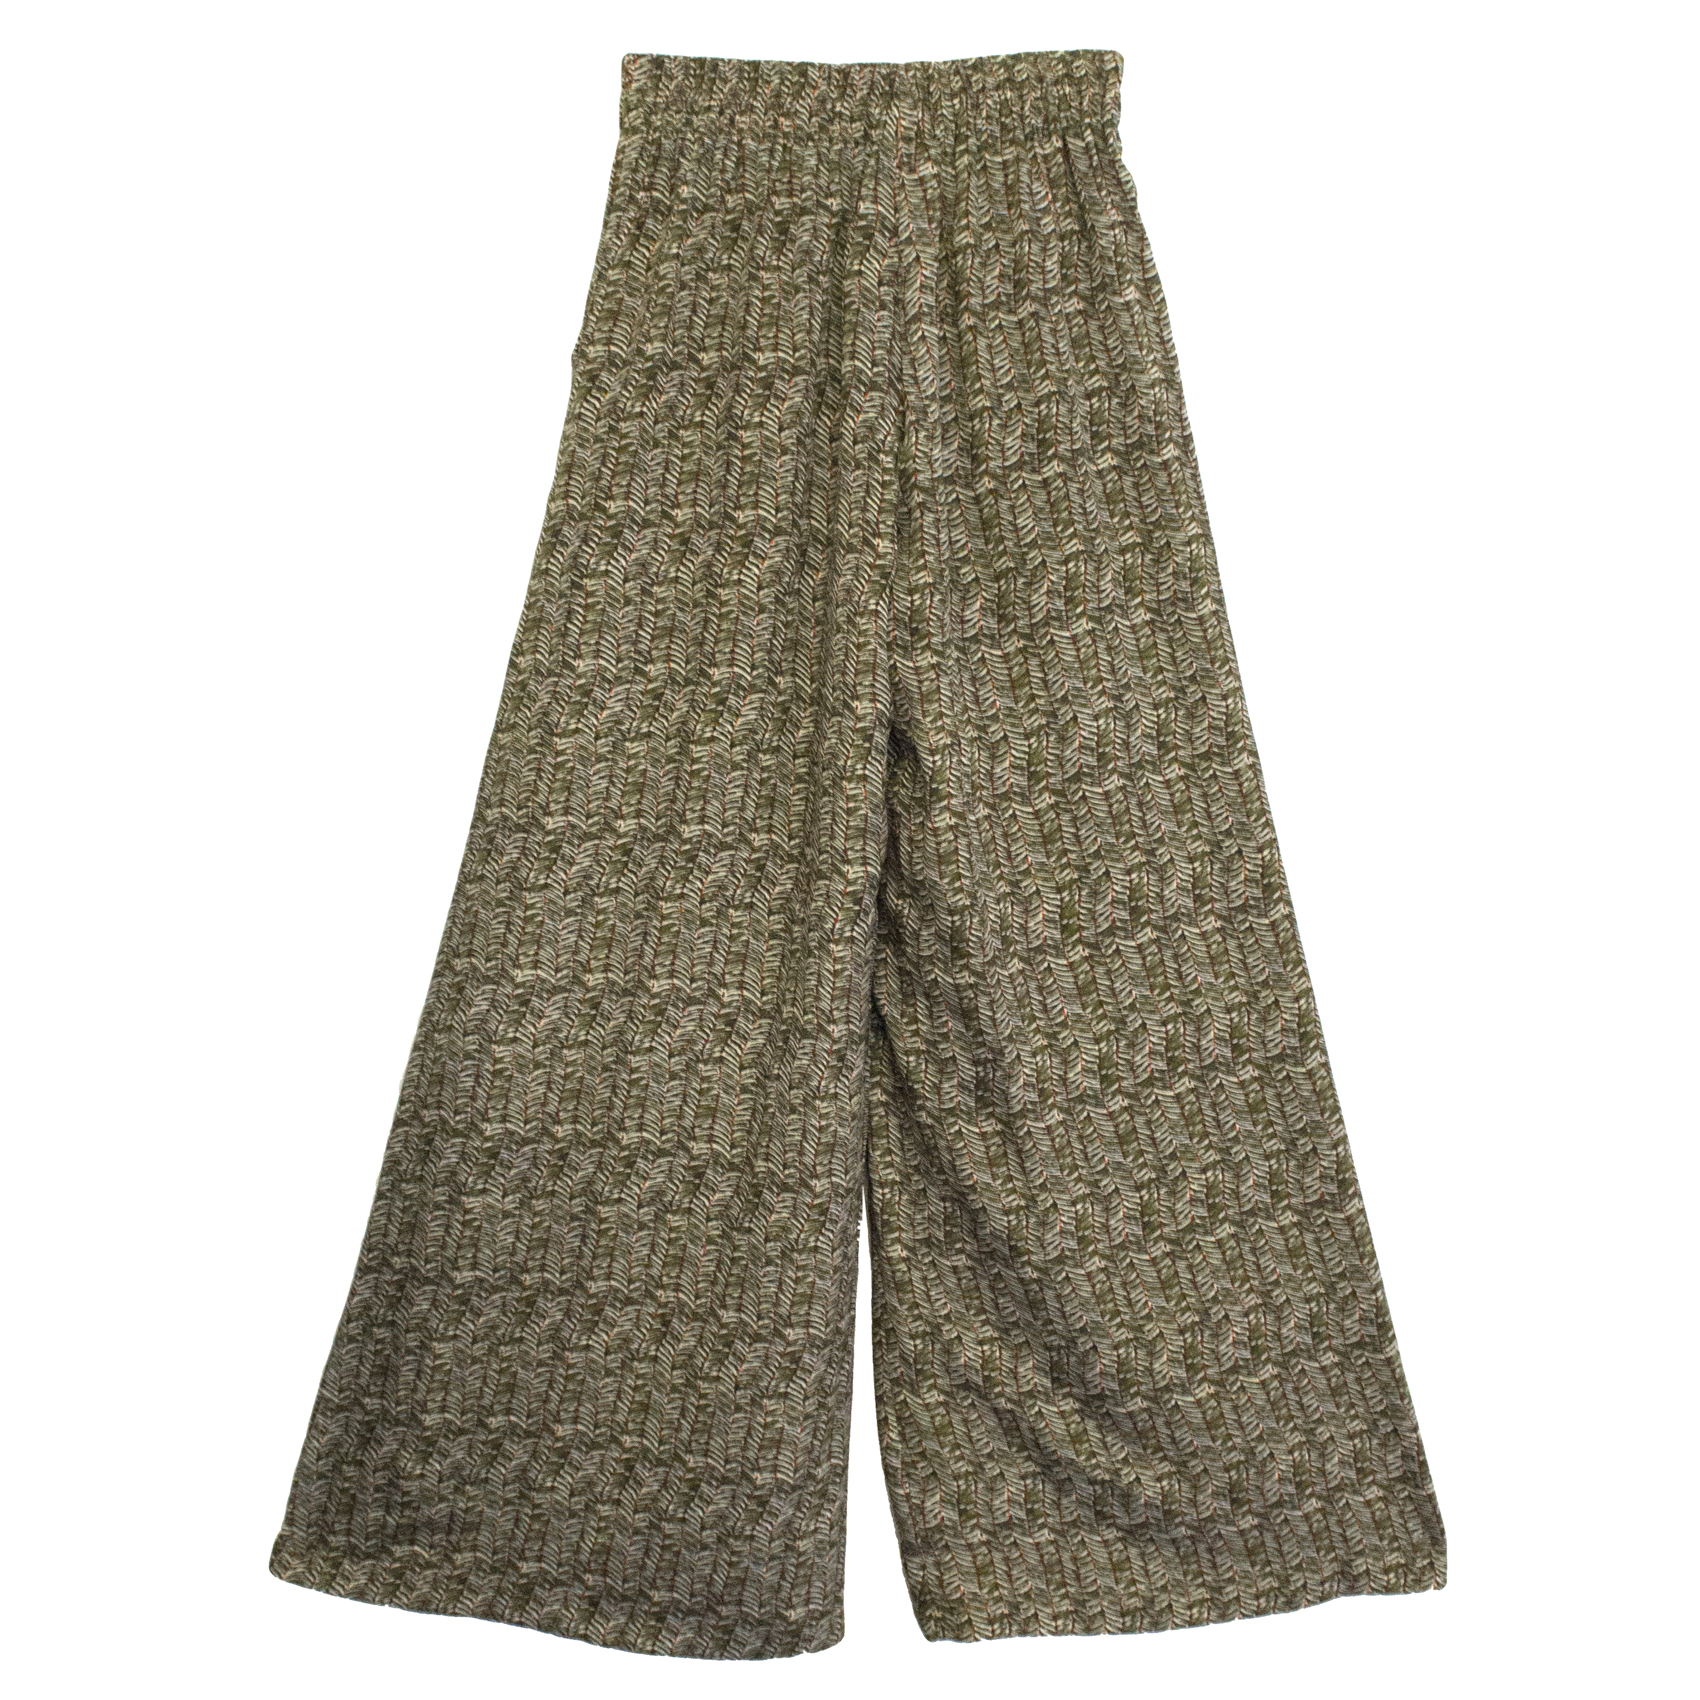 Edme & Esyllte patterned trousers